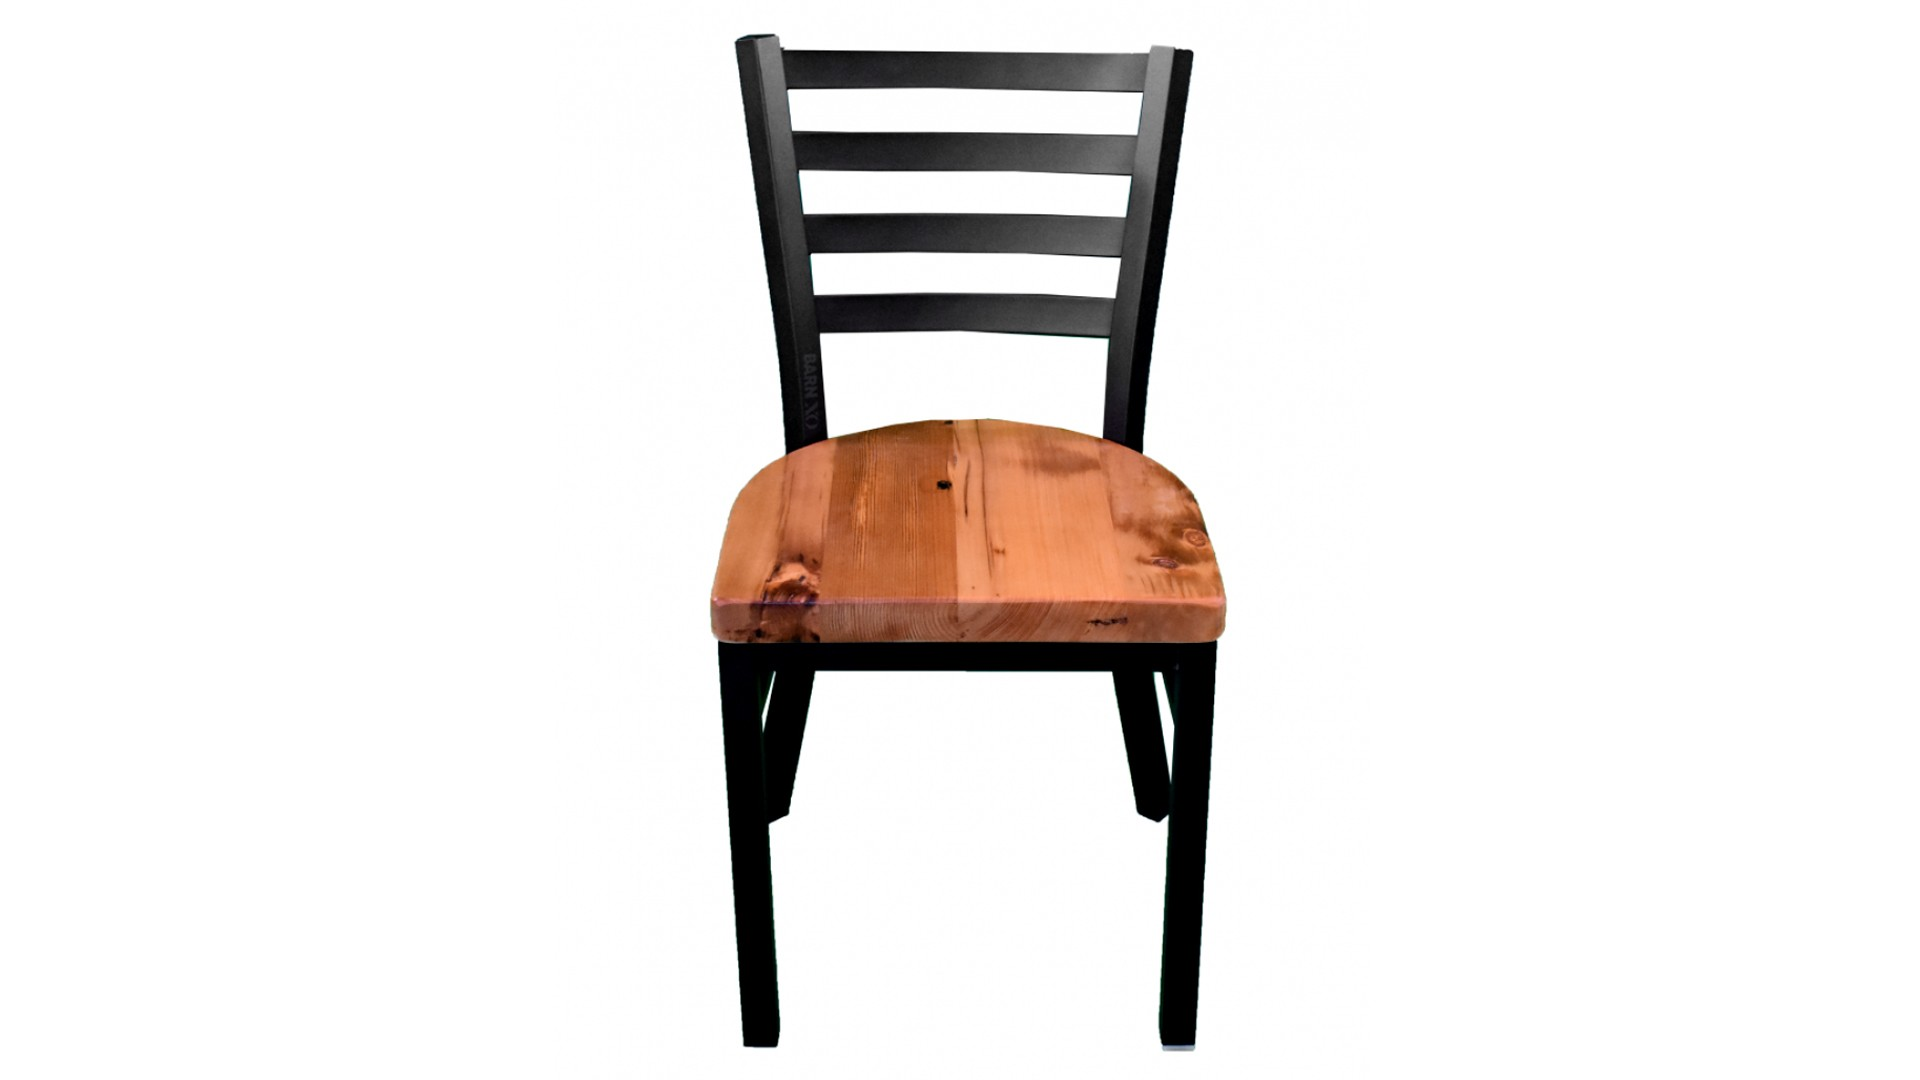 30 Inch Black Ladder Chair